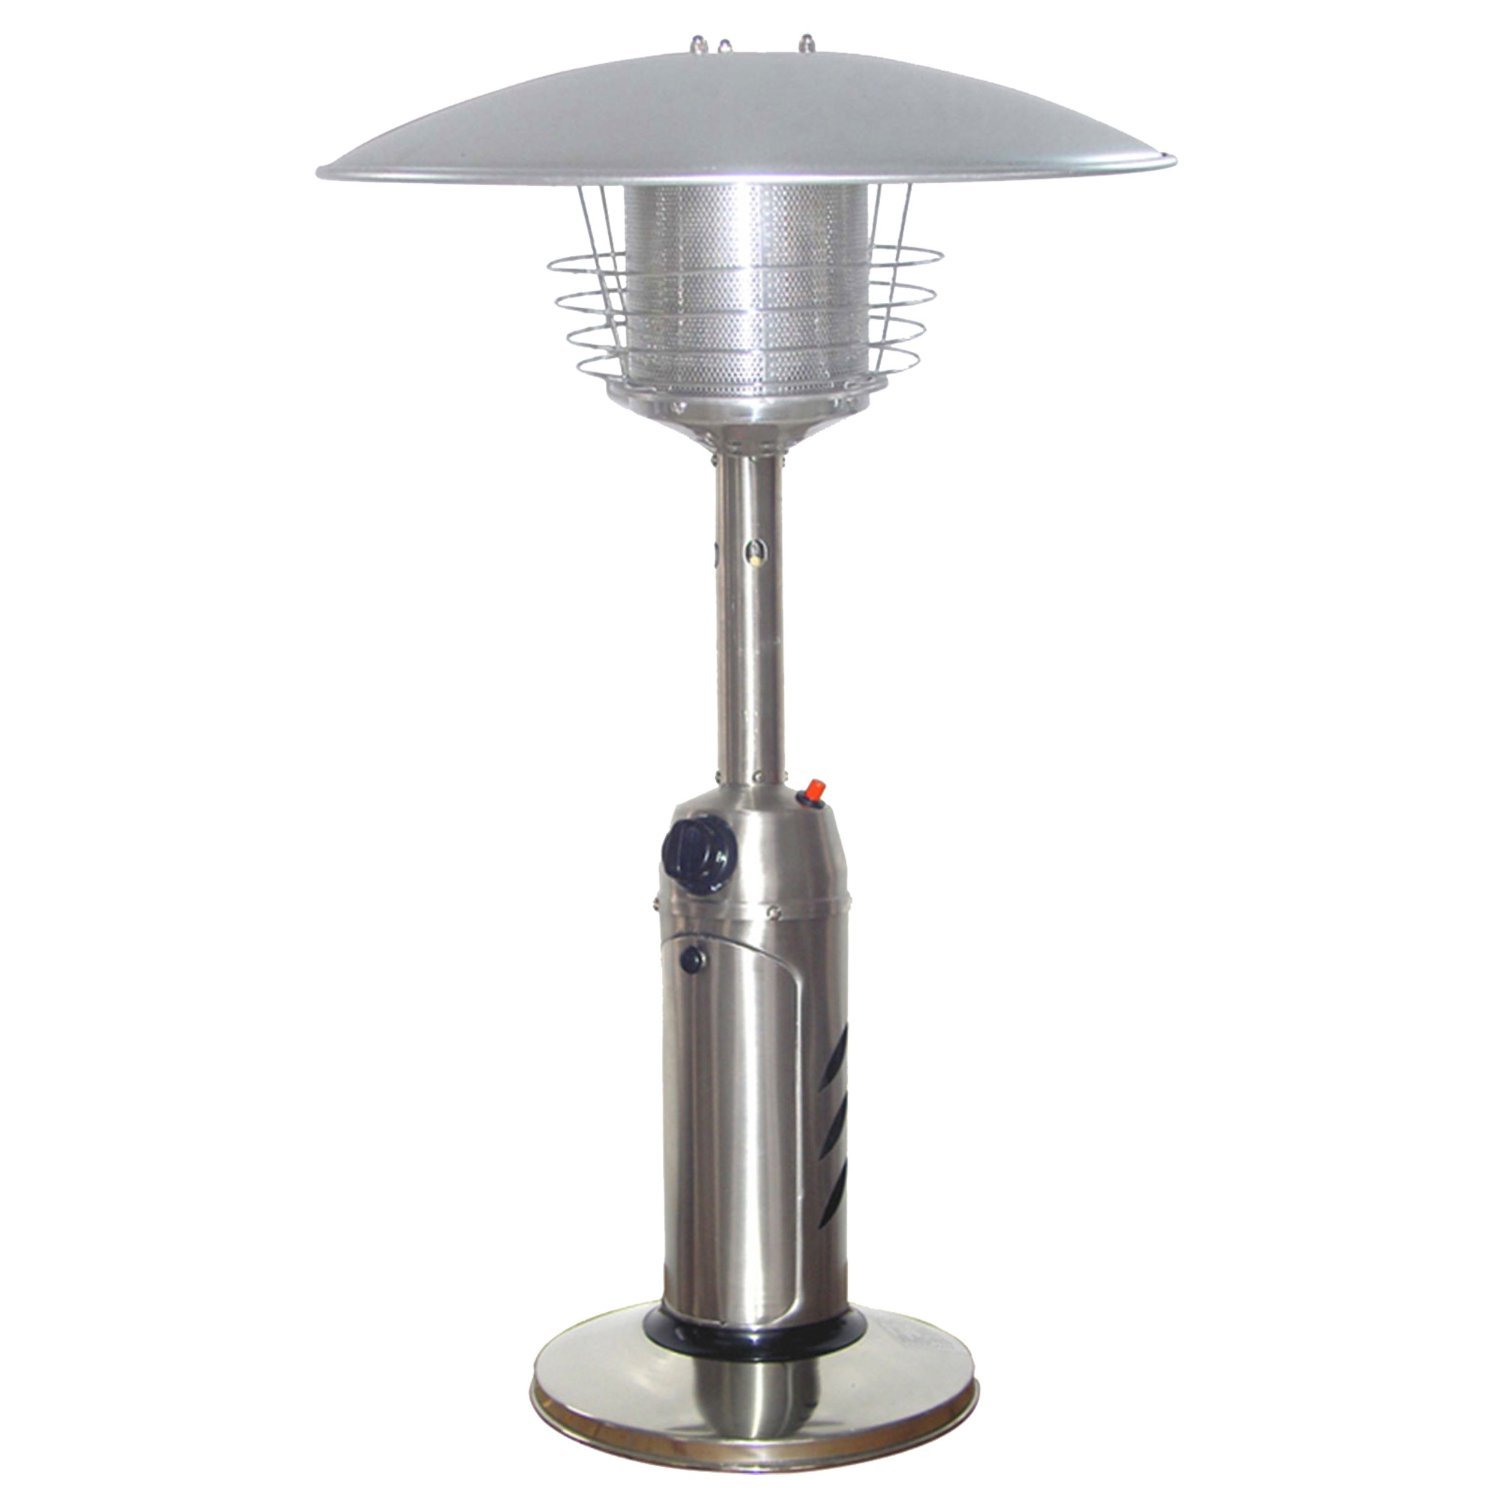 Primeglo Propane Patio Heater With Full Length Cover And